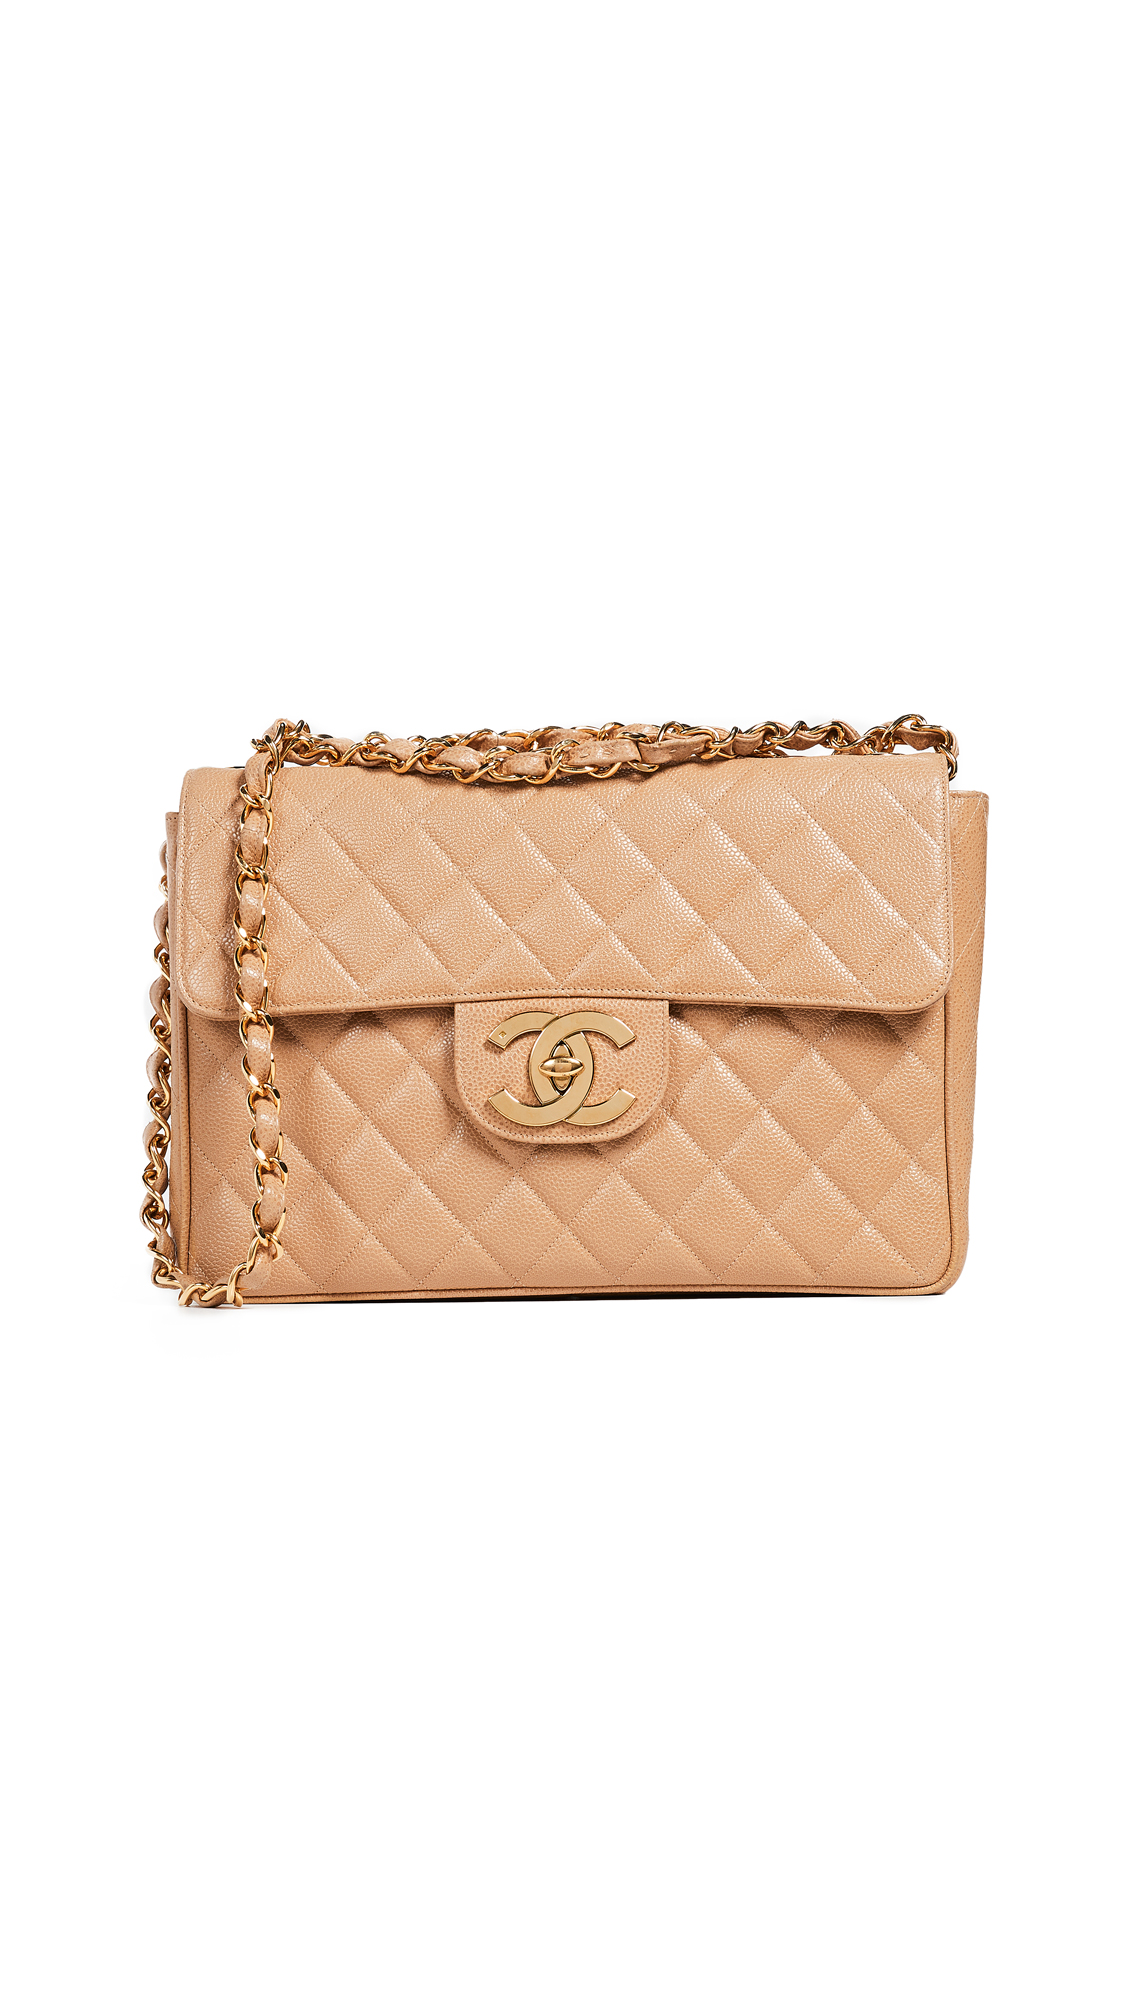 ad49508654ba1 What Goes Around Comes Around Chanel Caviar Half Flap Jumbo Bag In Beige